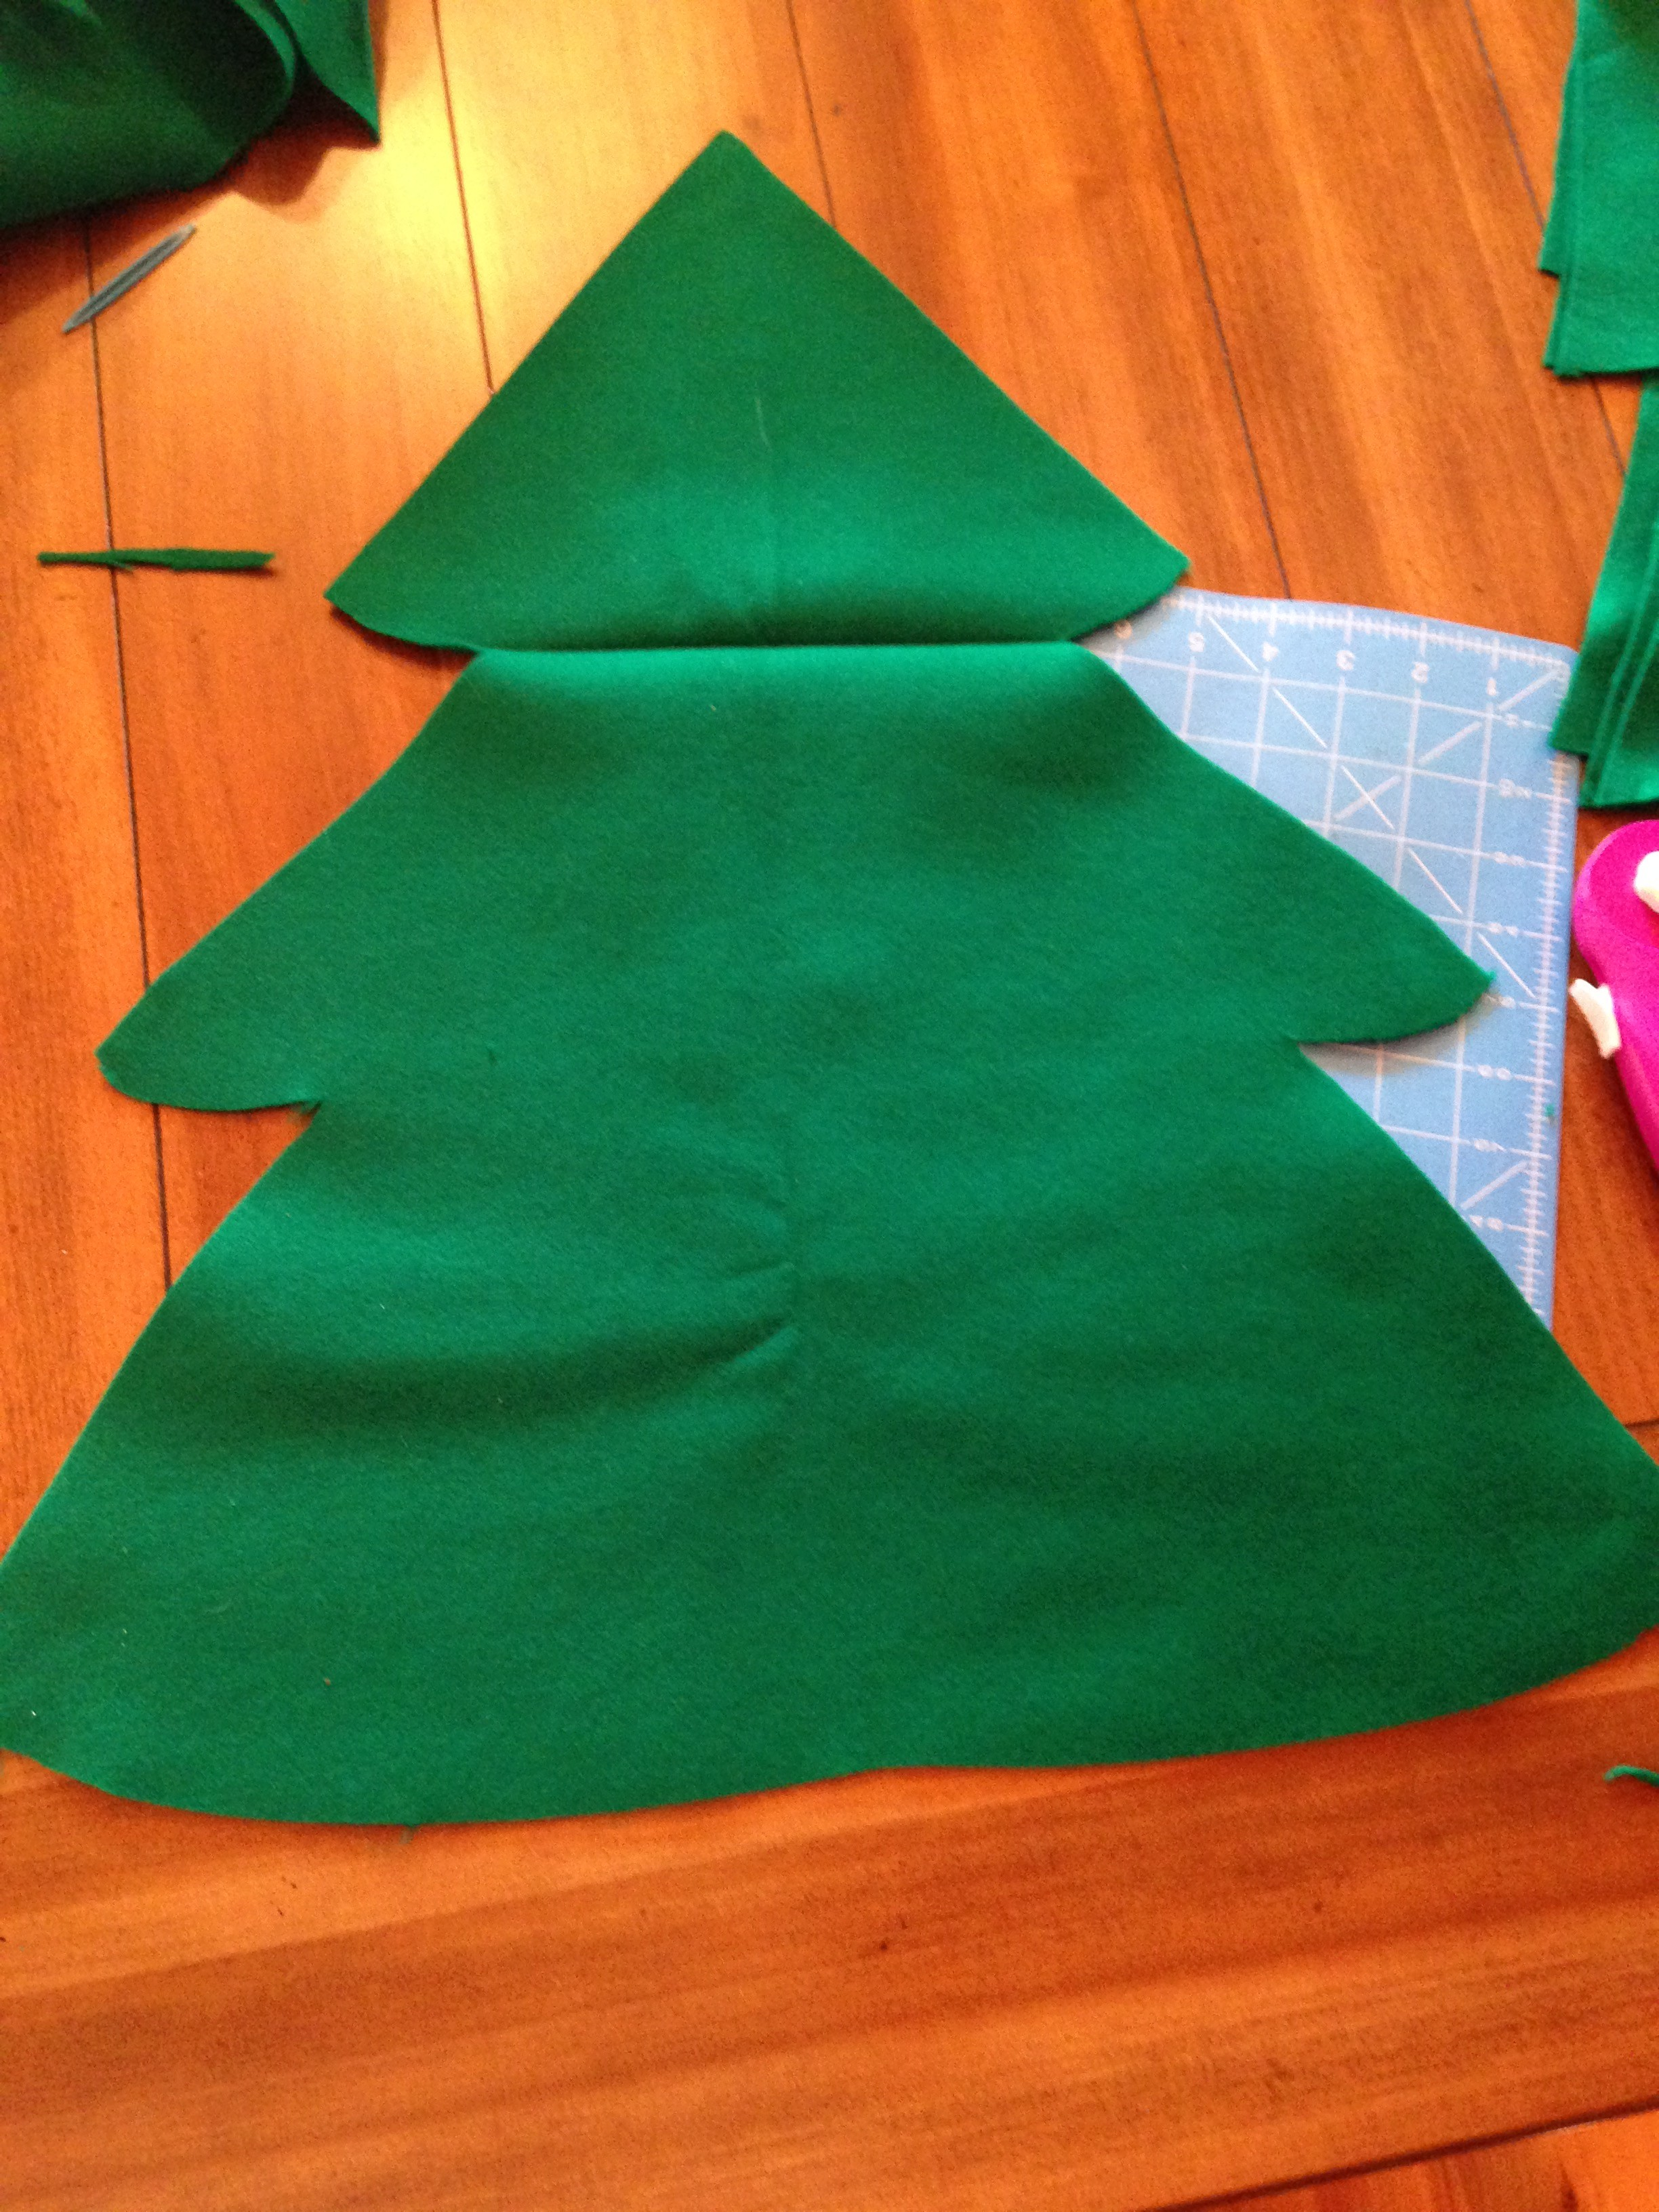 2 Next If You Want A Stump Use Brown Fabric To Cut One Out Once Again Can Trace It Either Sew On The Bottom Or Hot Glue